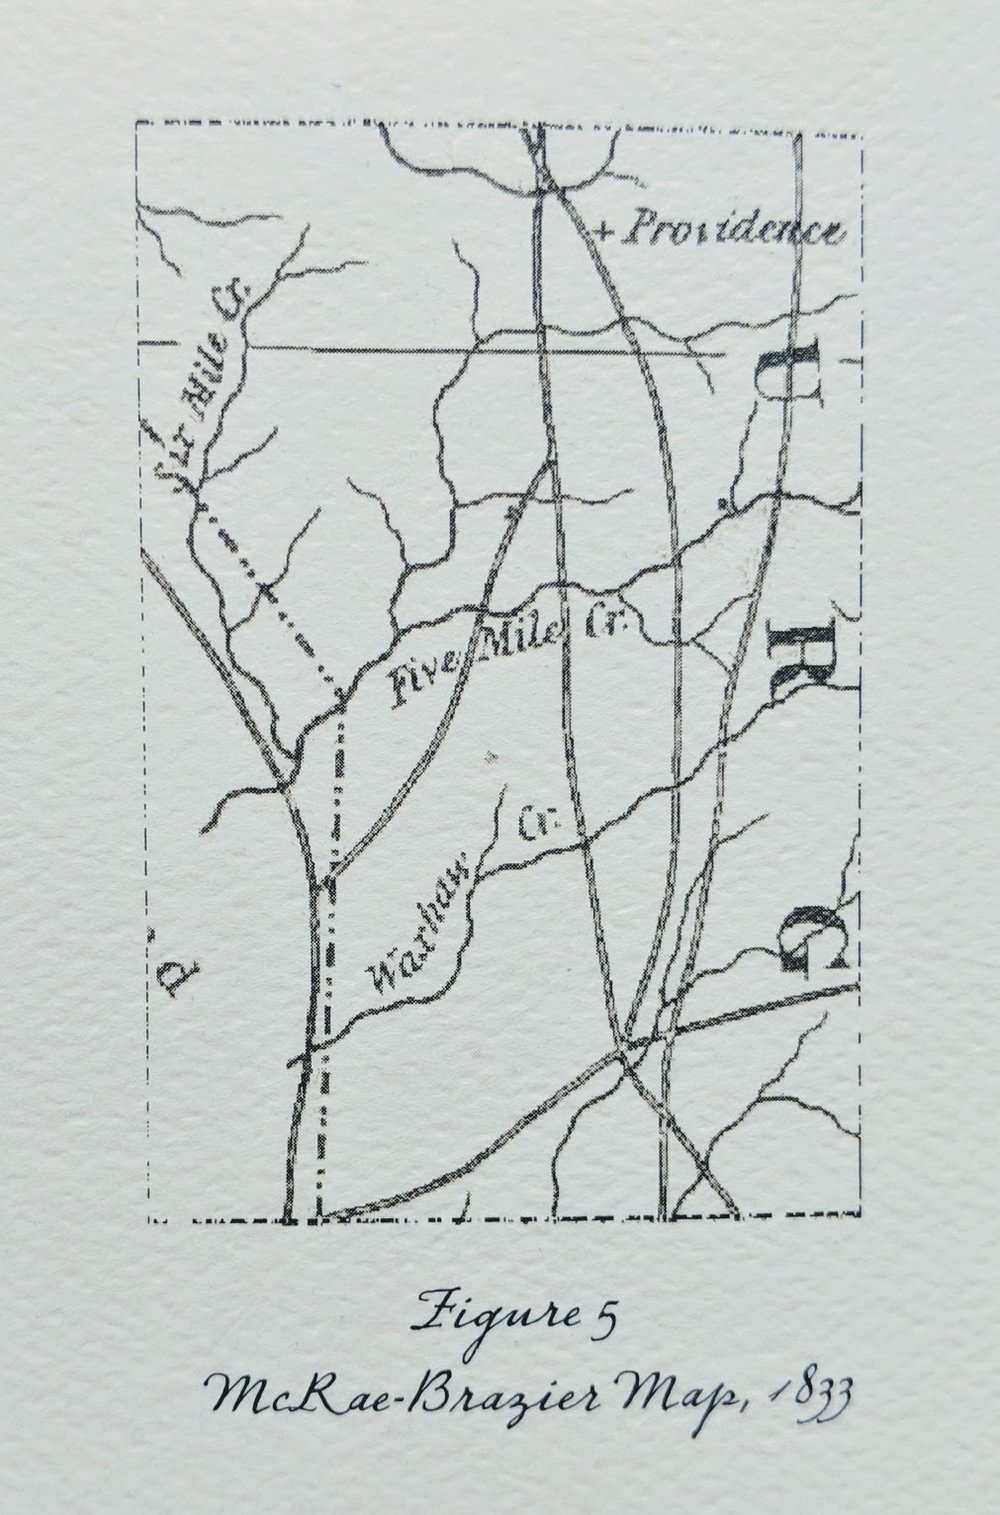 On the 1833 McRae-Brazier map, - We can see three of the eventual five roads coming together on the ridge between the West and East Forks of 12/Five Mile Creek (Figure 5, Left). Where these roads come together there is now a main entrance to Lawson. Of further interest is the fact that, though Providence Church appears on McRae-Brazier, Providence Road does not. Waxhaw still does not exist, and Matthews, by these mapmakers, was deemed unworthy of mentioning.